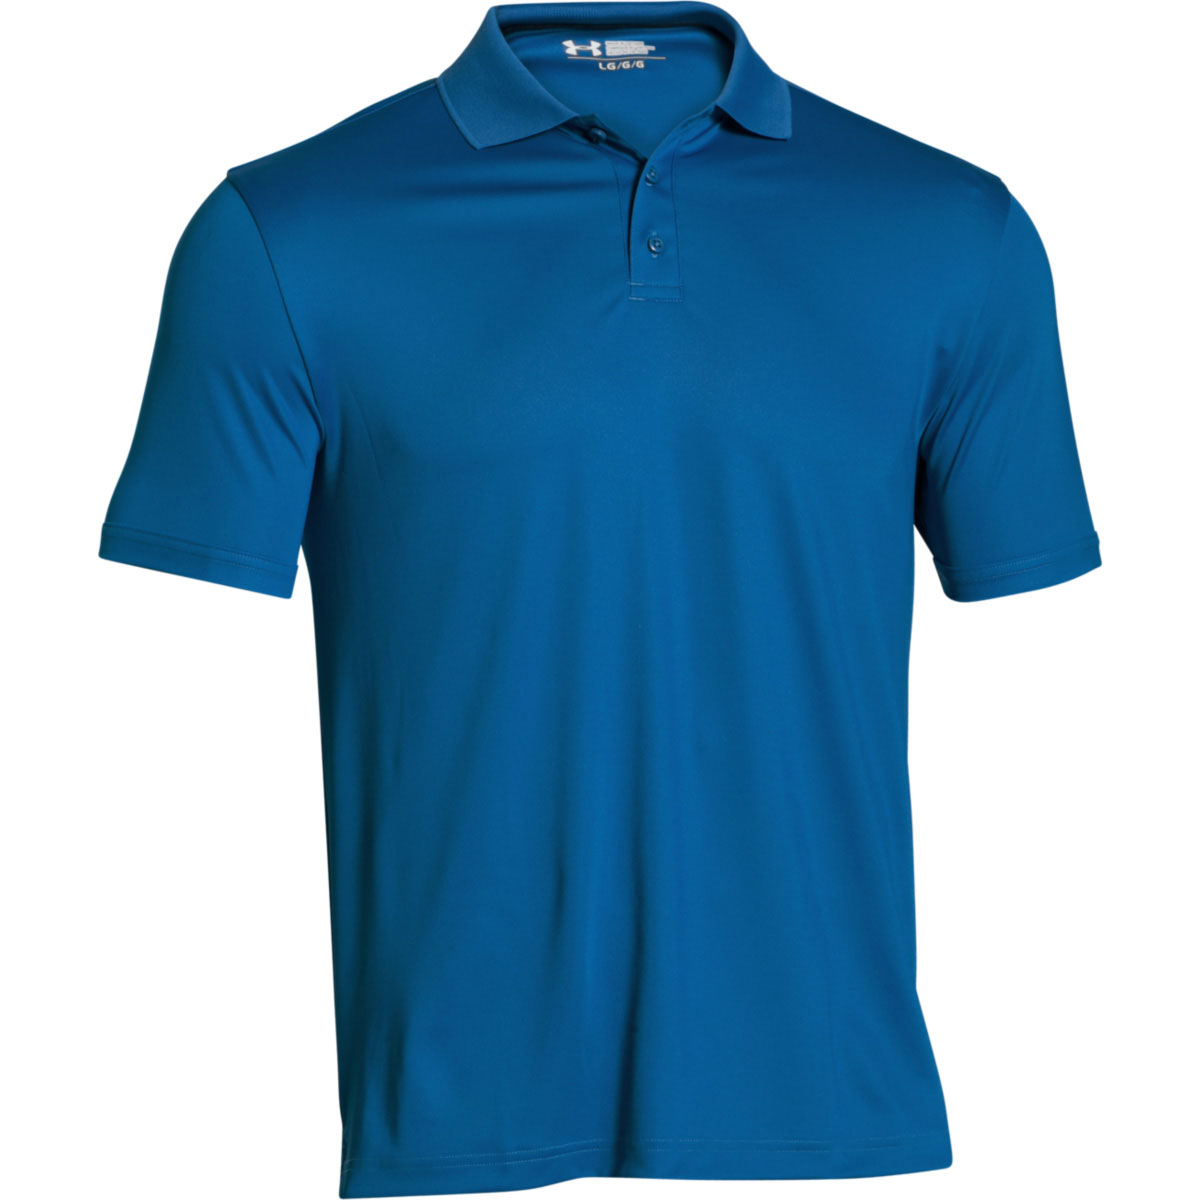 Under armour 2017 mens medal play performance polo shirt for Under armor polo shirts